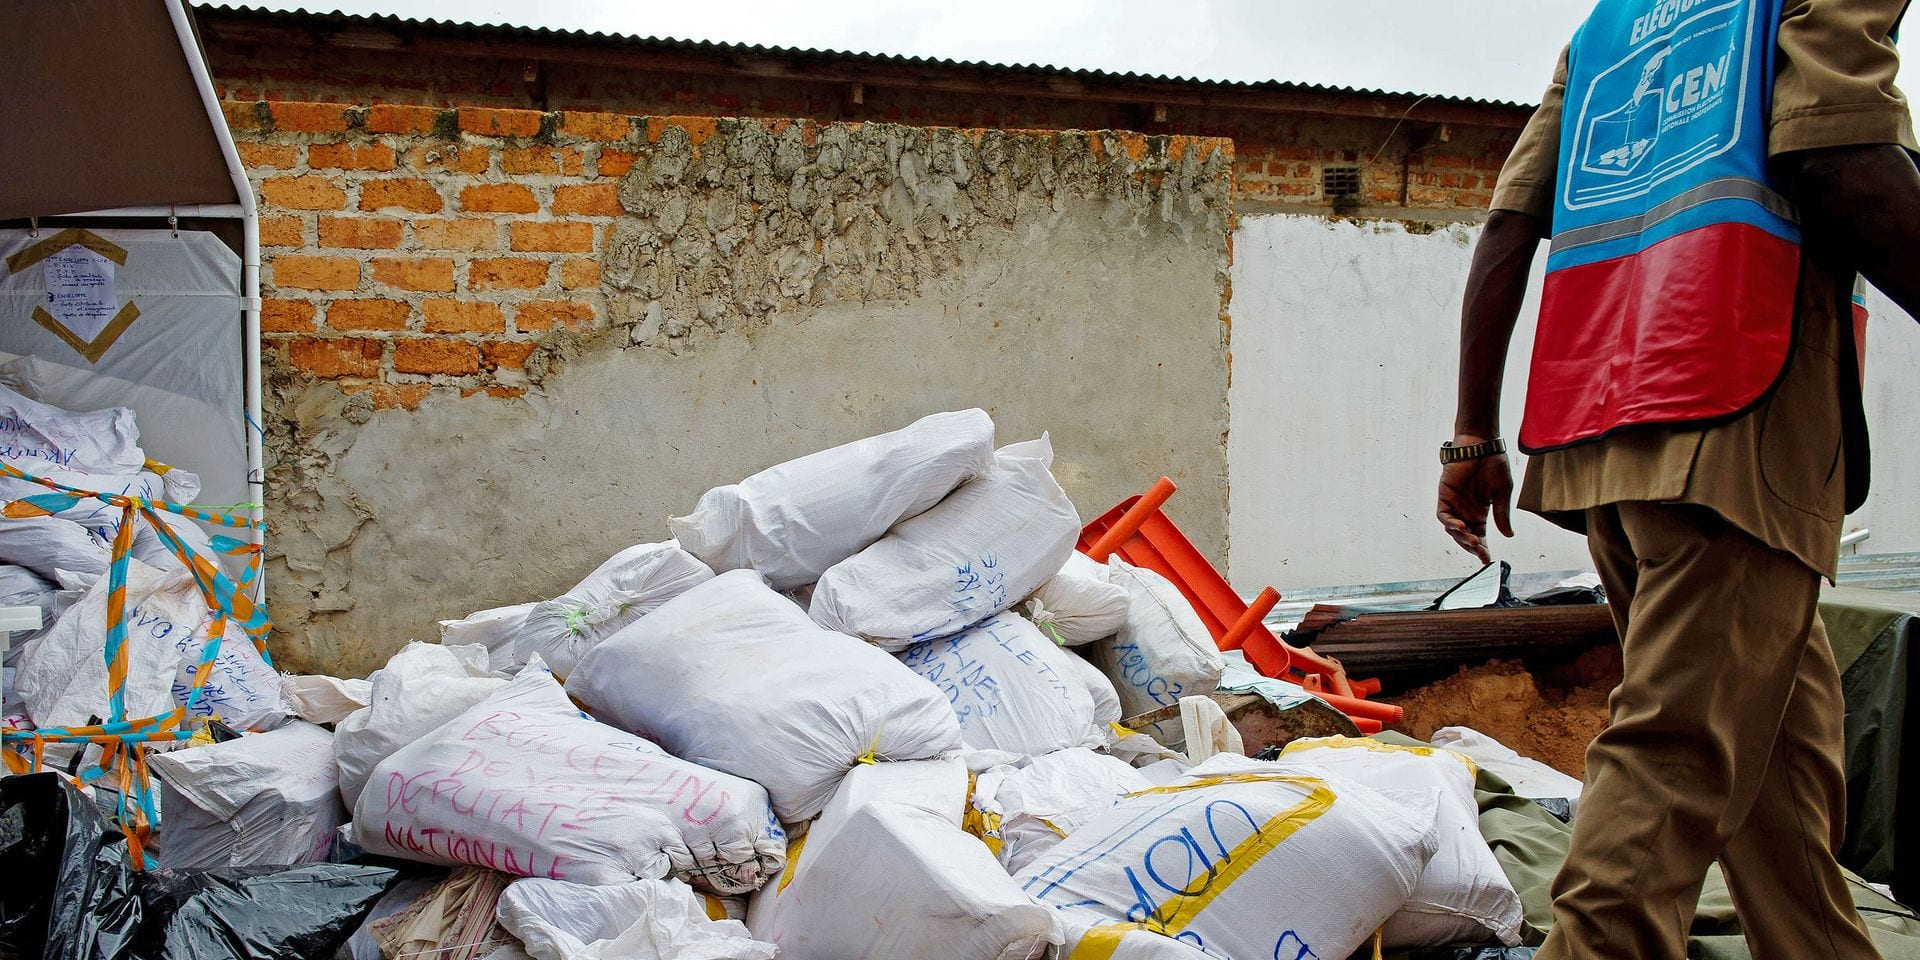 A Congolese electoral agent walks past a pile of bags of ballot papers at the National Independent Electoral Commission (CENI) in Lubumbashi on December 5, 2011. The announcement of the official provisionary results are expected tomorrow for the Democratic Republic of the Congo's presidential elections which took place last Monday, which have been marred by claims of fraud and a lack of transparency by opposition candidates. AFP PHOTO / PHIL MOORE (Photo by PHIL MOORE / AFP)